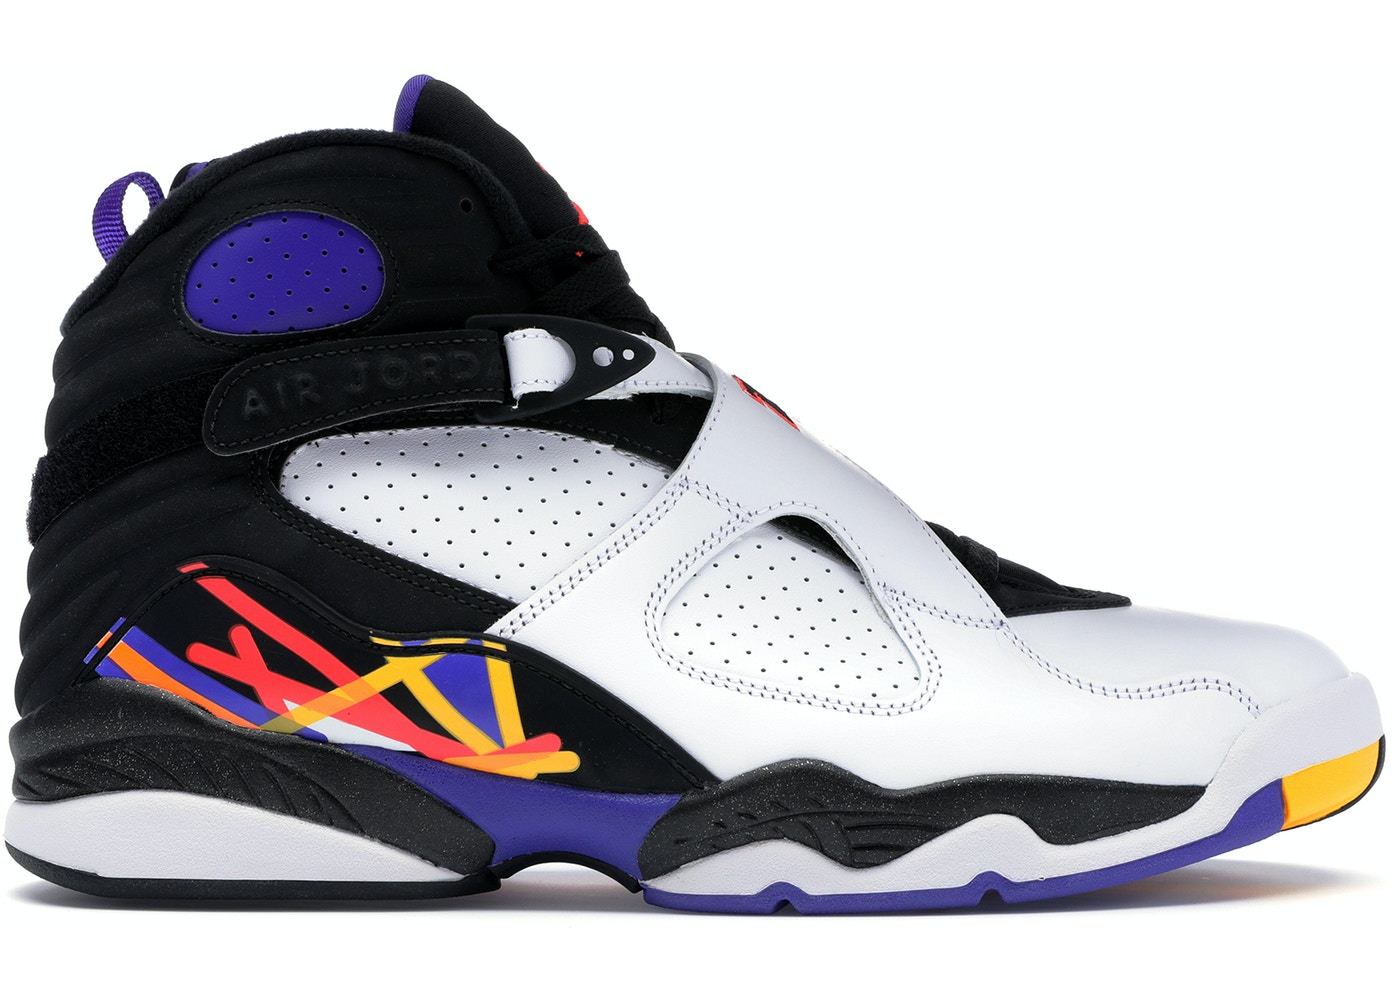 2c03d581648d9e Buy Air Jordan 8 Shoes   Deadstock Sneakers